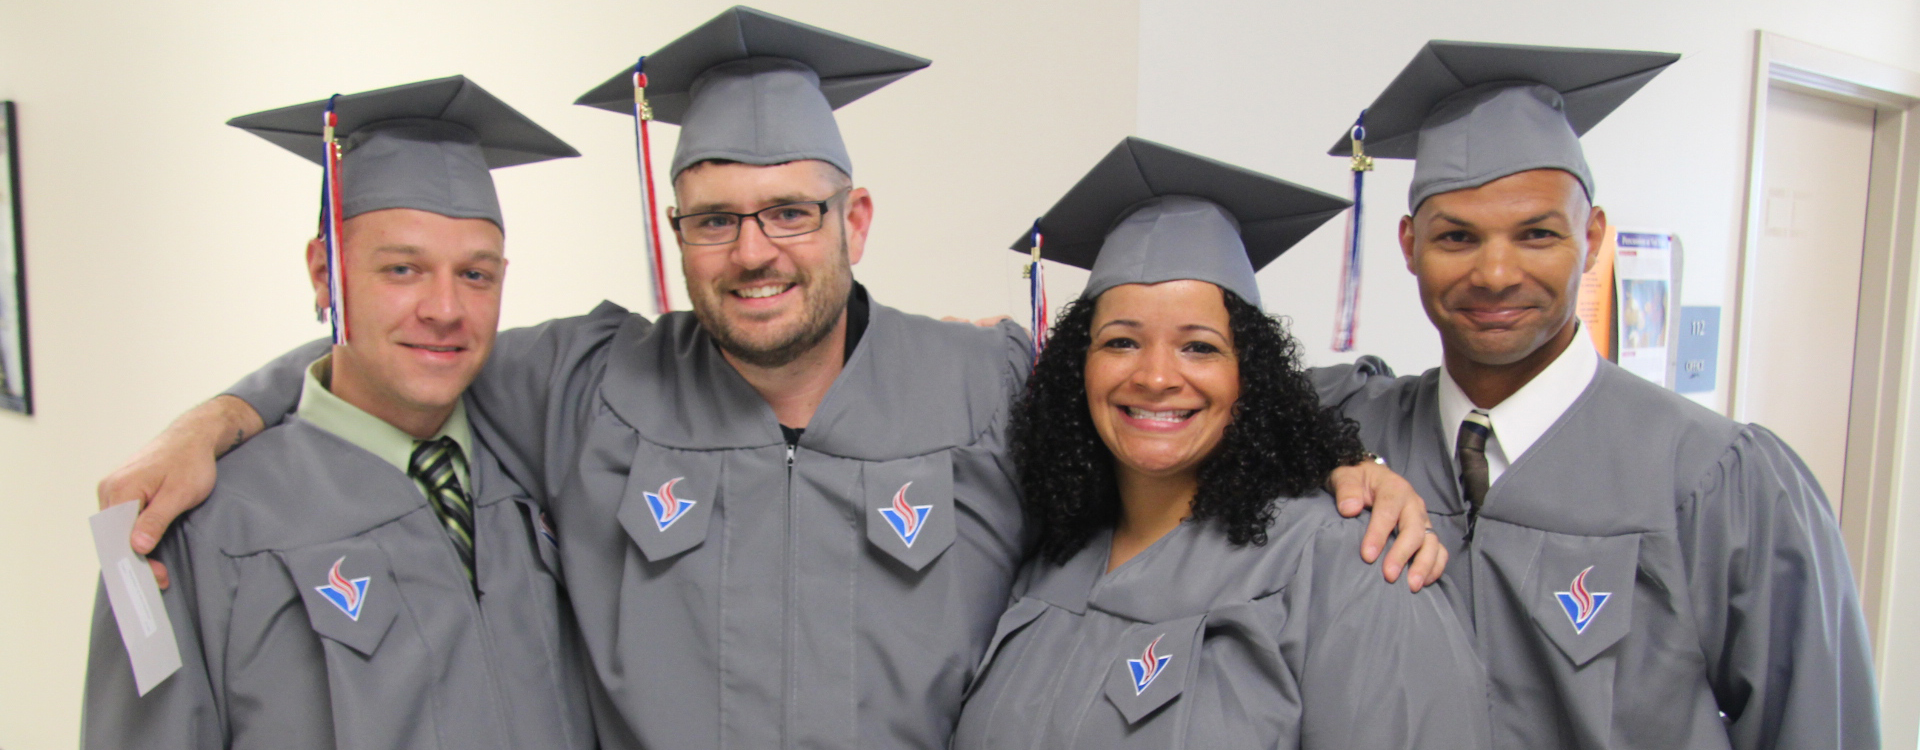 Graduates at Vol State commencement.